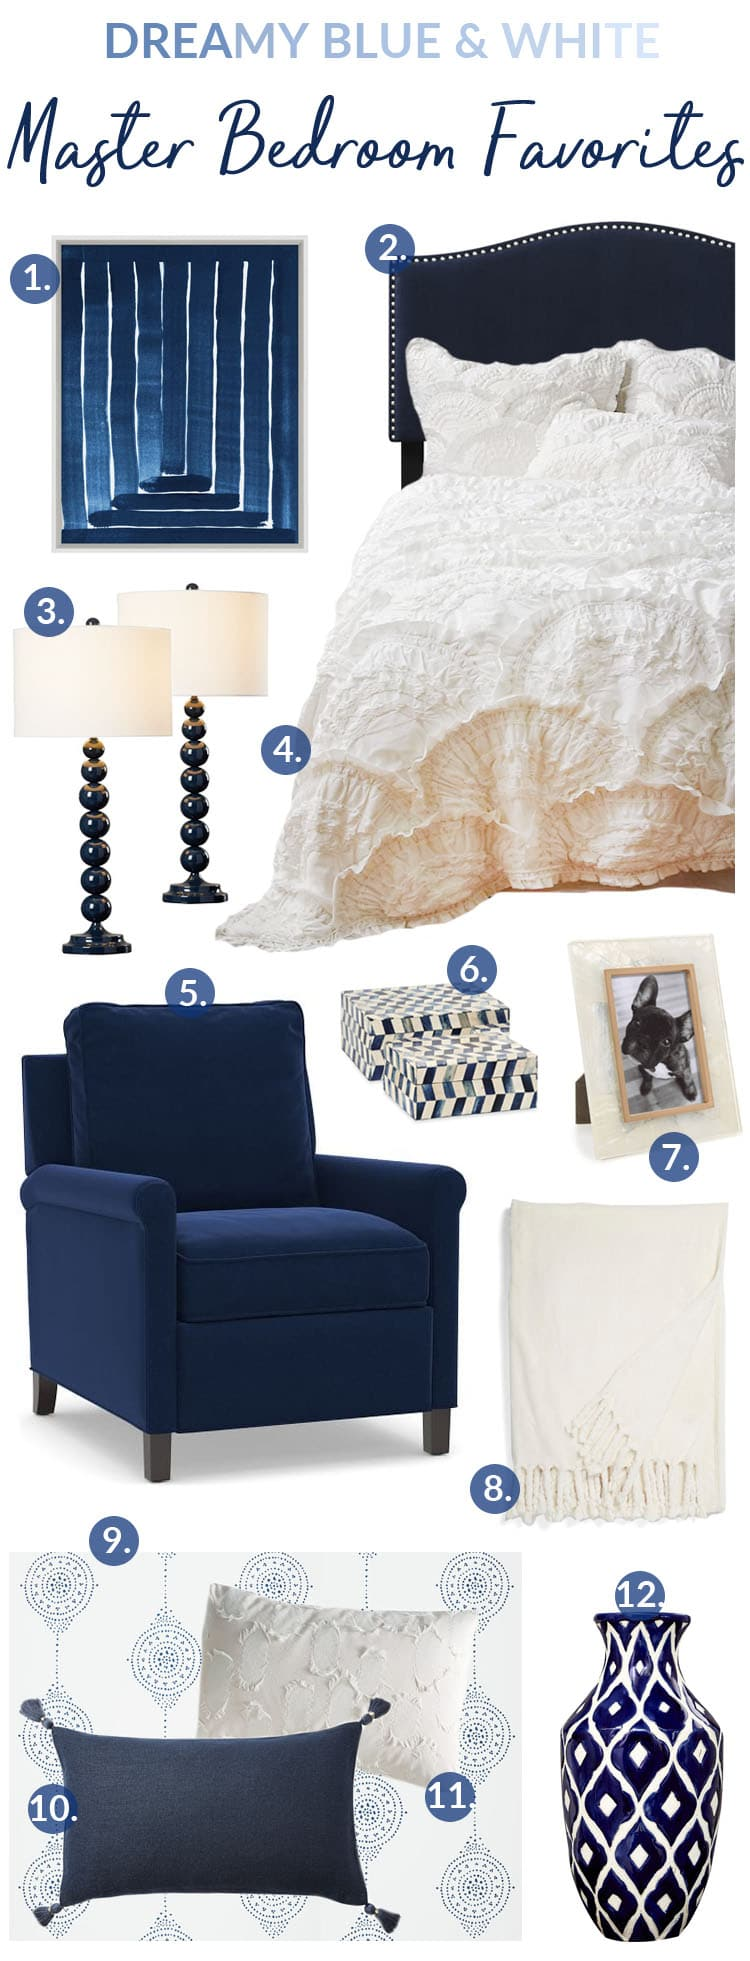 Dreamy Blue And White Master Bedroom Favorites - Setting for Four